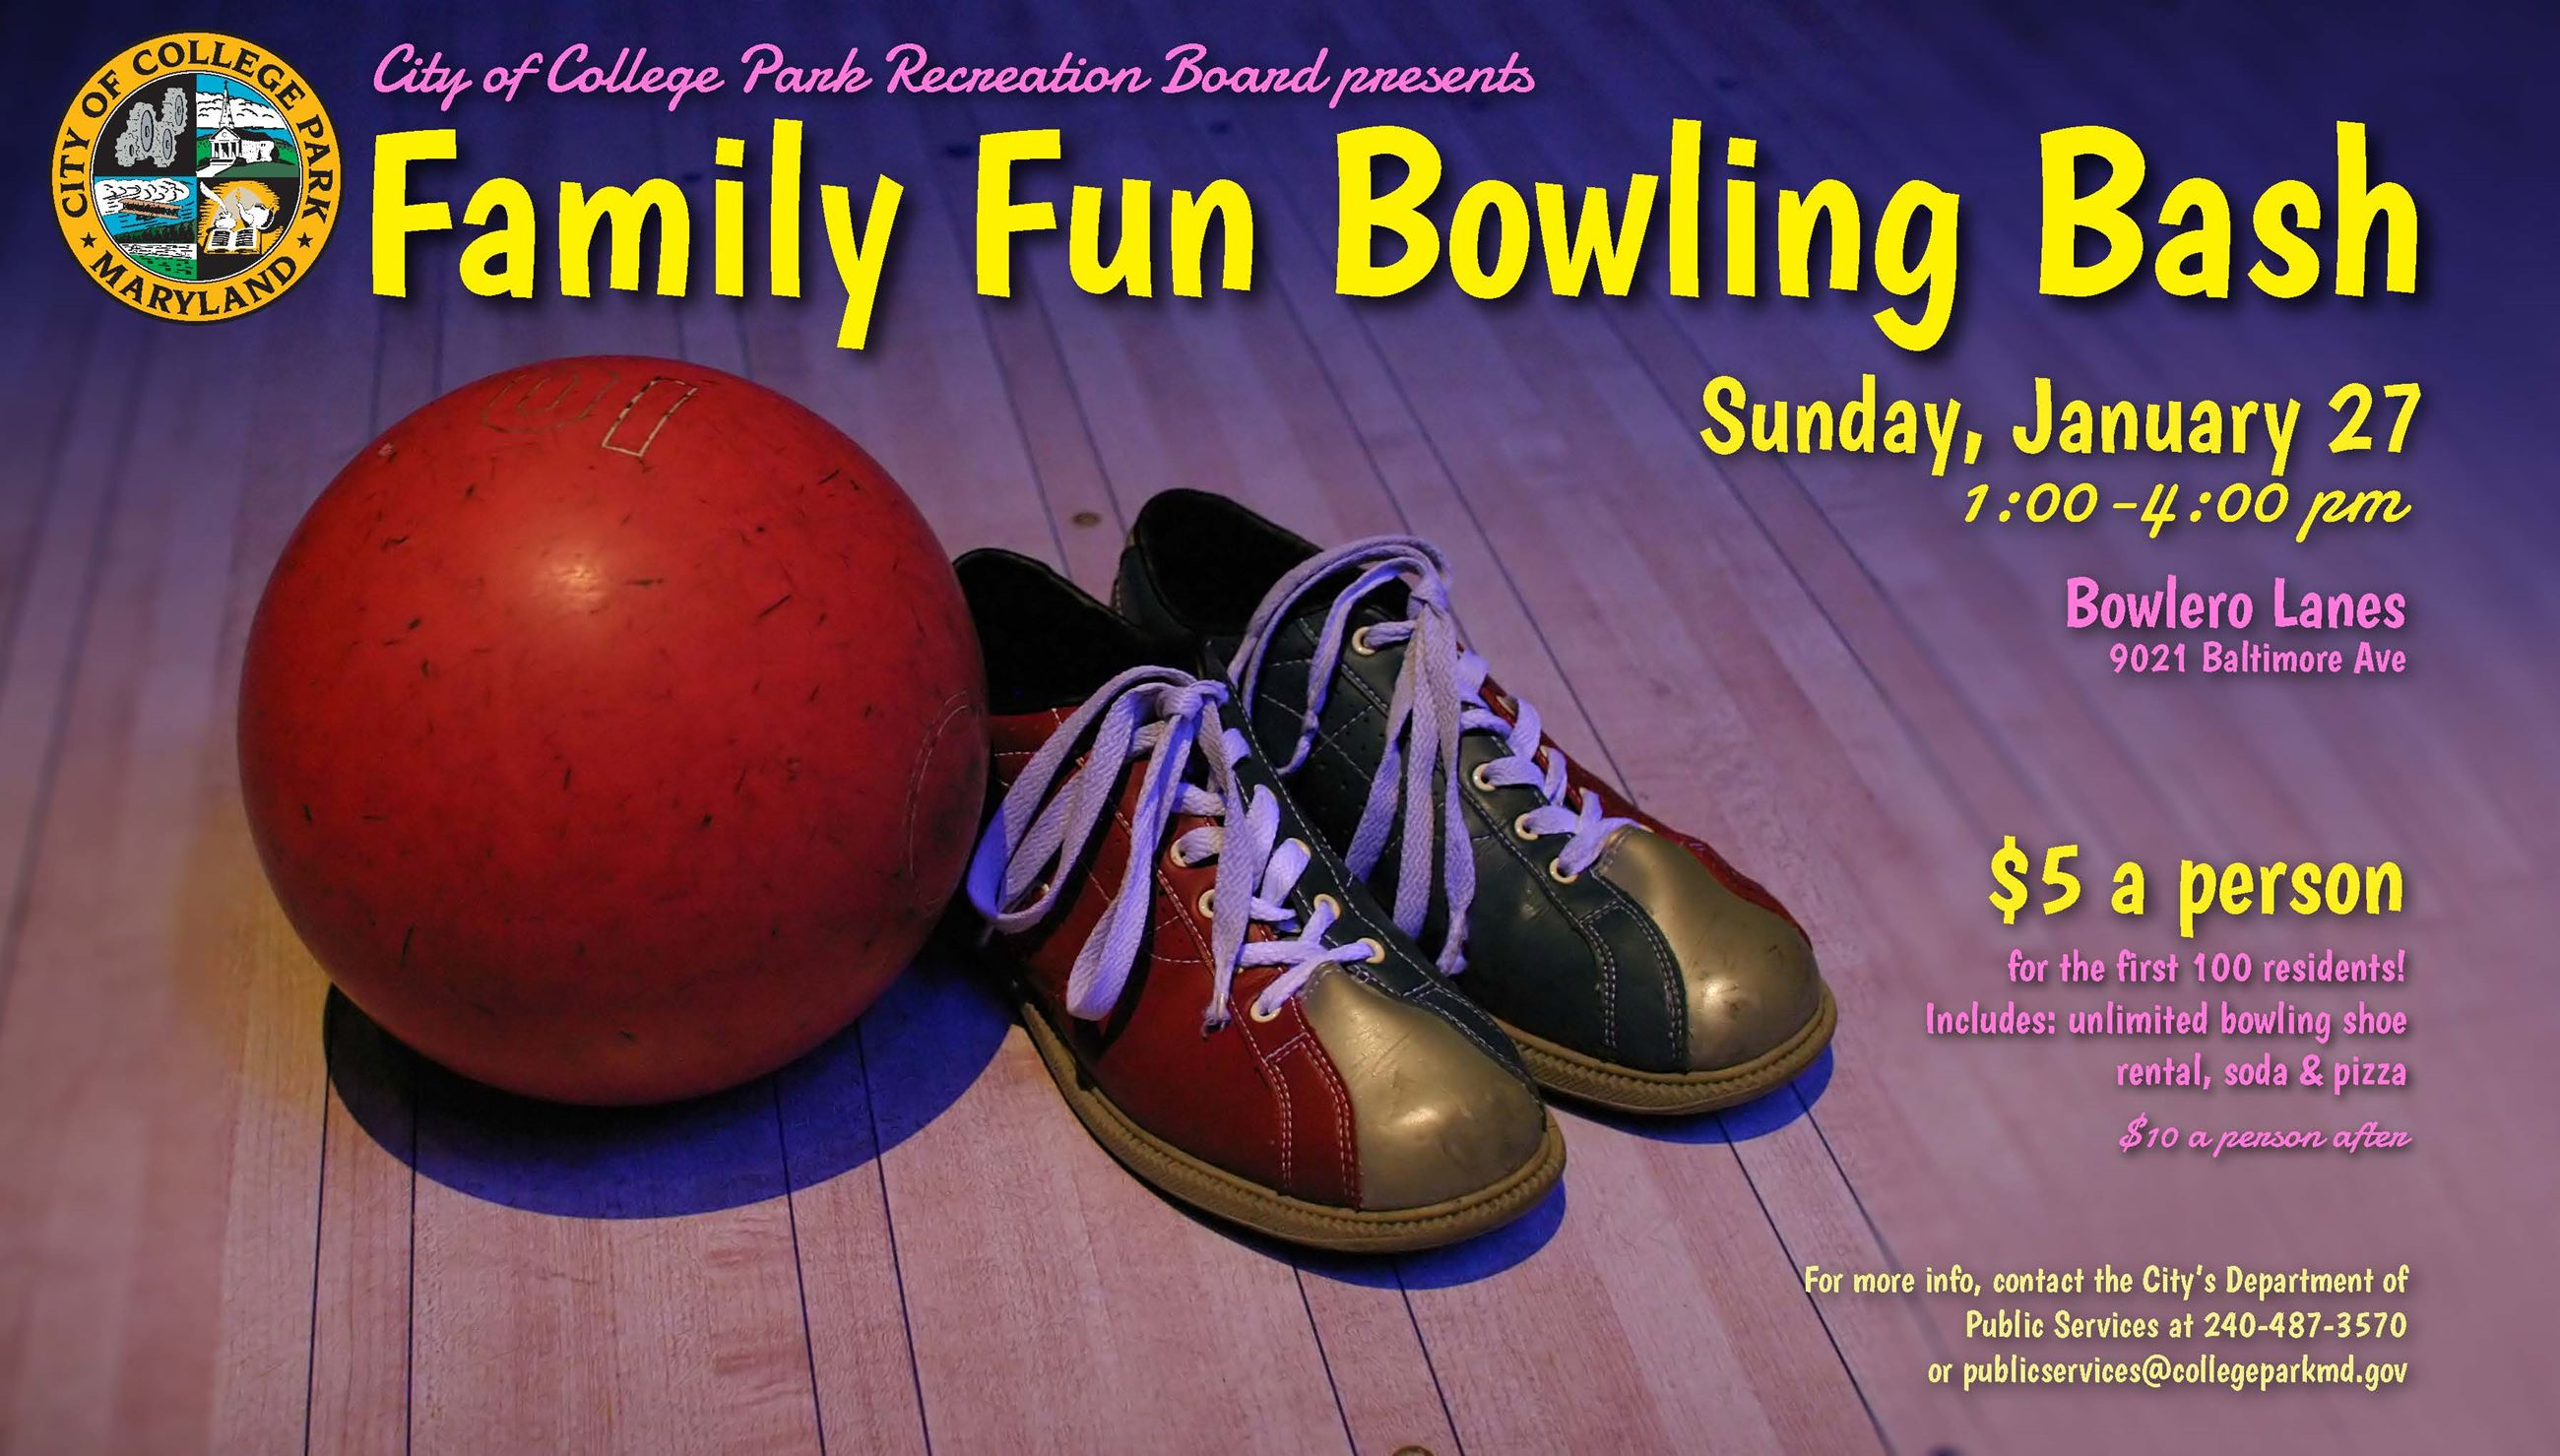 2019 bowling bash flyer